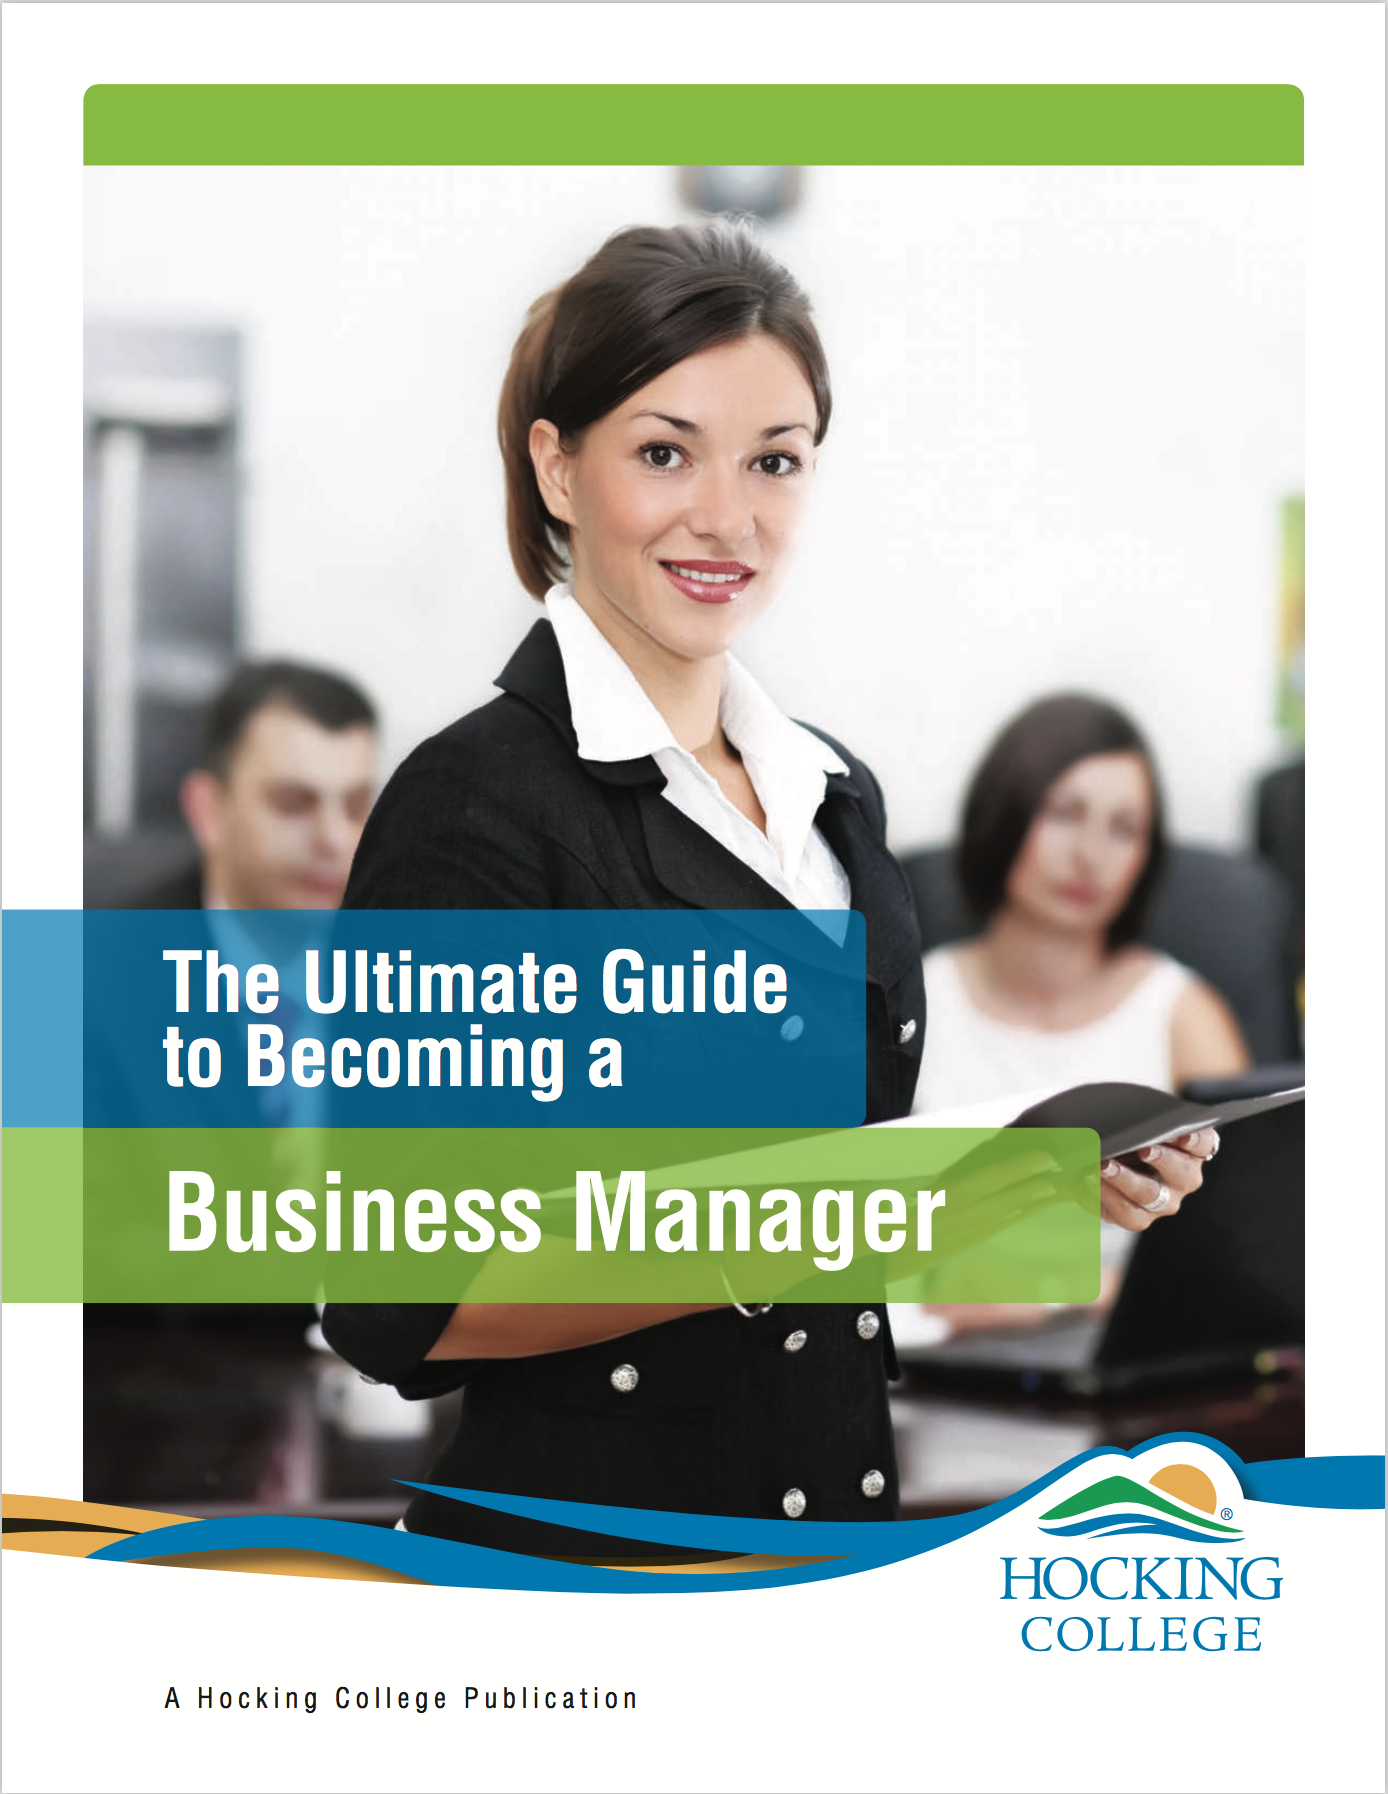 Find Your Ideal Career | Become a Business Manager